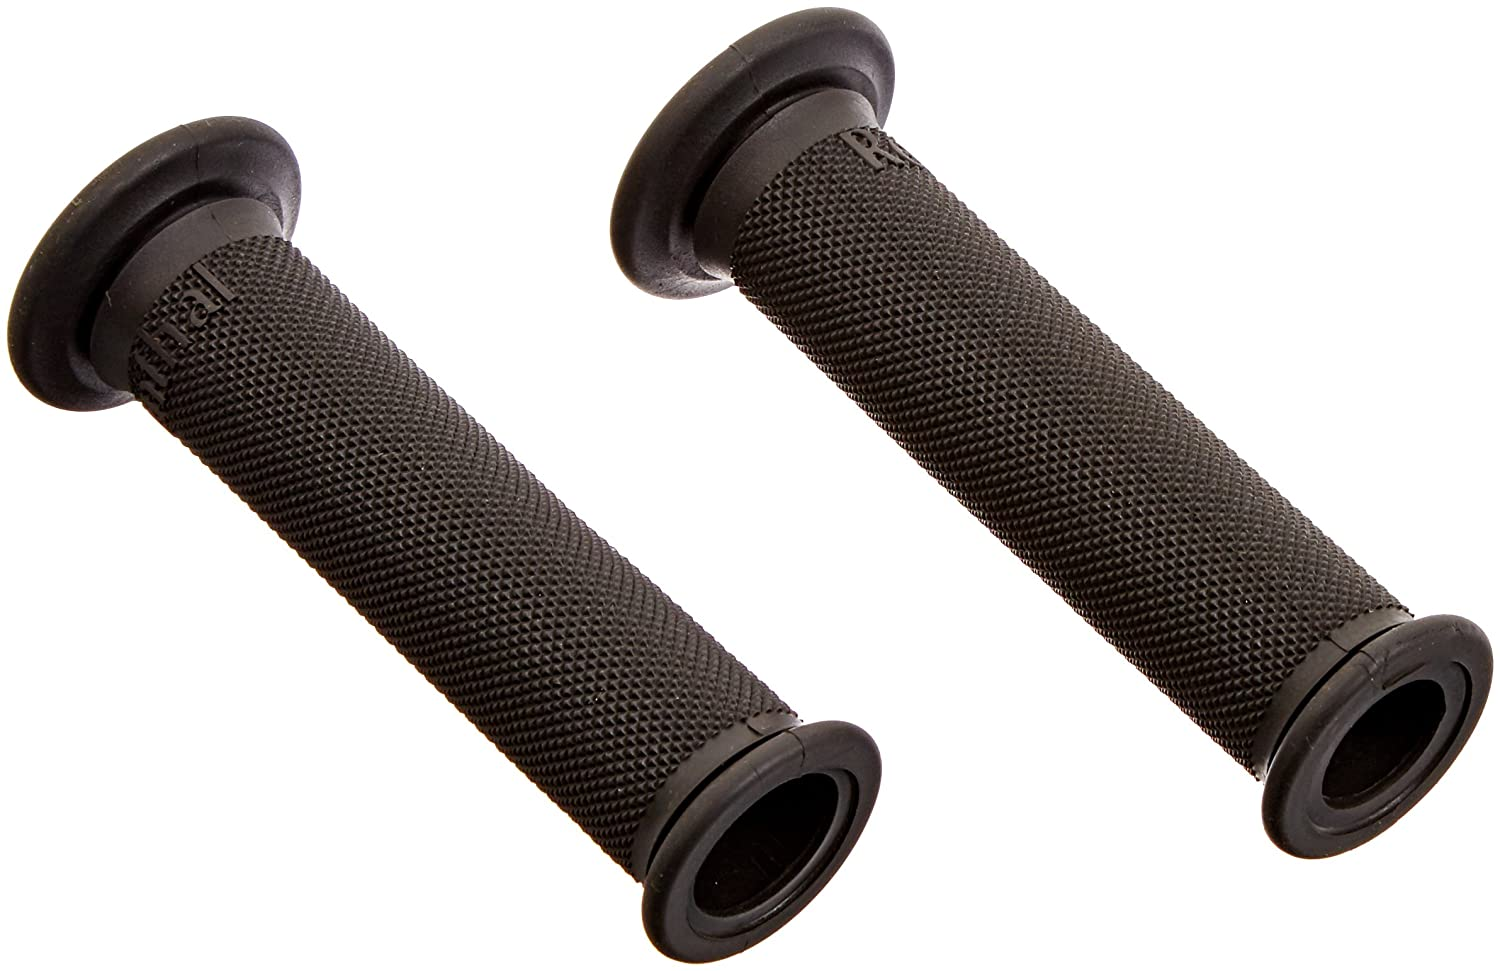 Renthal G149 Black Full Diamond Firm Compound Sportbike Grip}